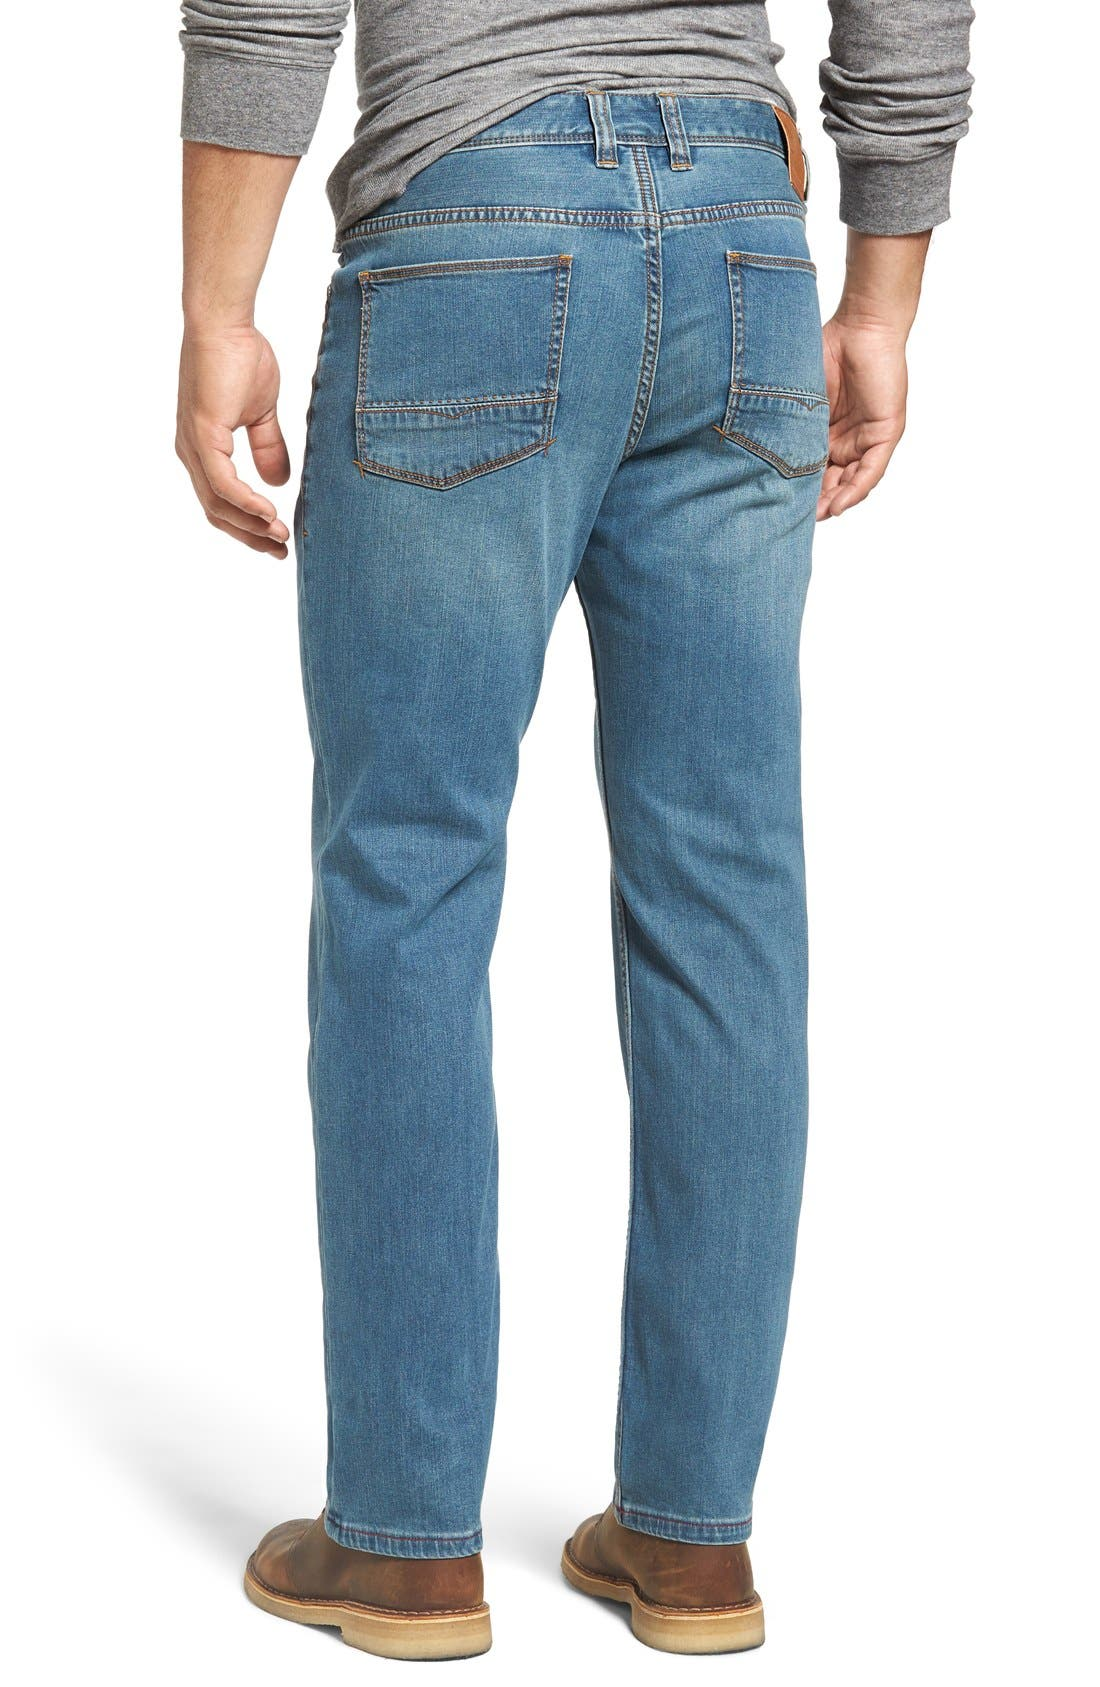 Sand Drifter Straight Leg Jeans,                             Alternate thumbnail 2, color,                             Vintage Wash